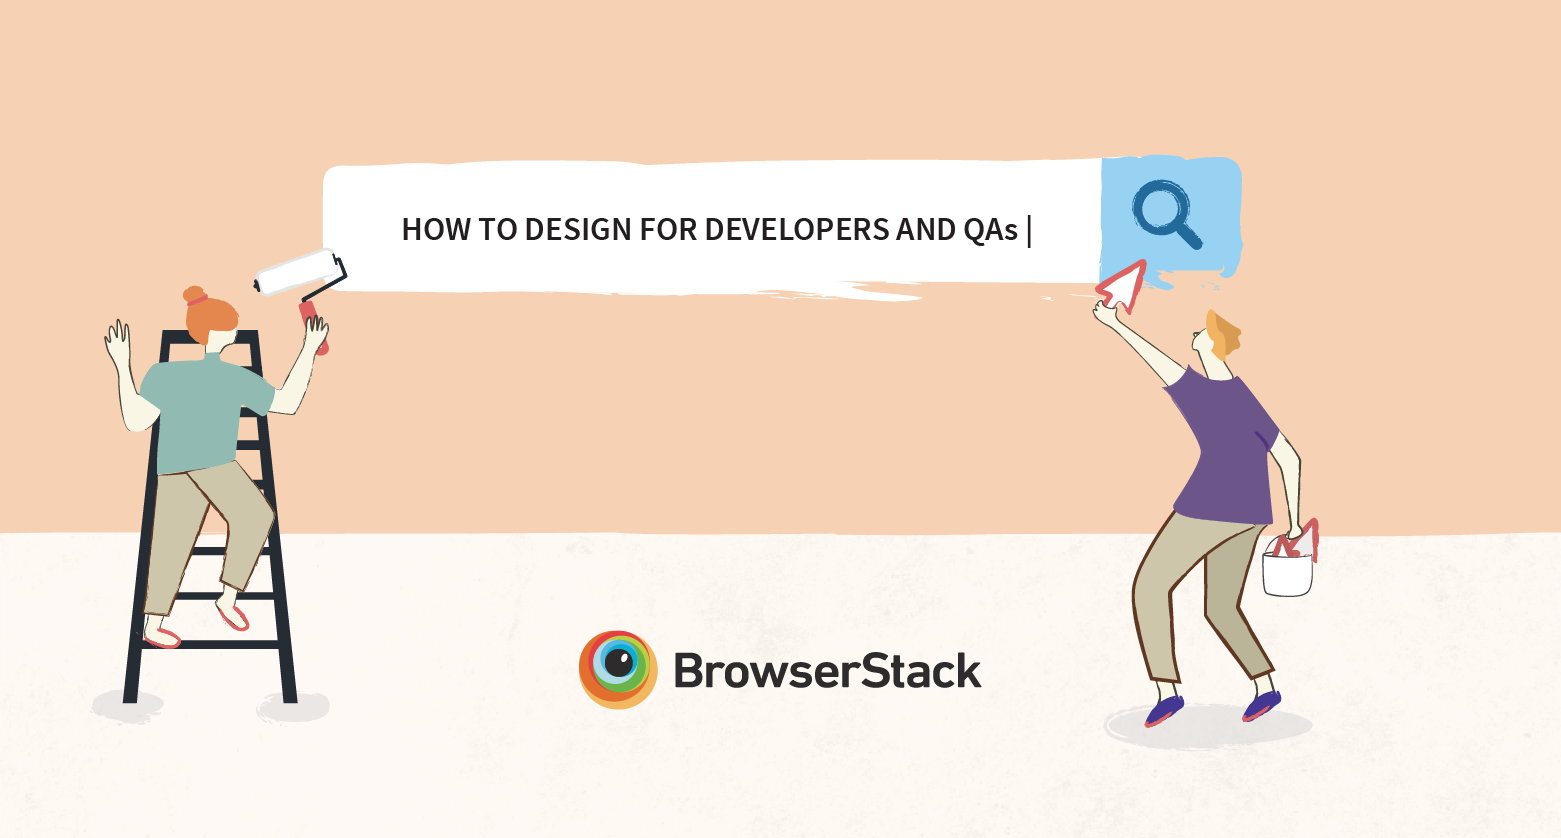 A guide to designing for developers and QAs